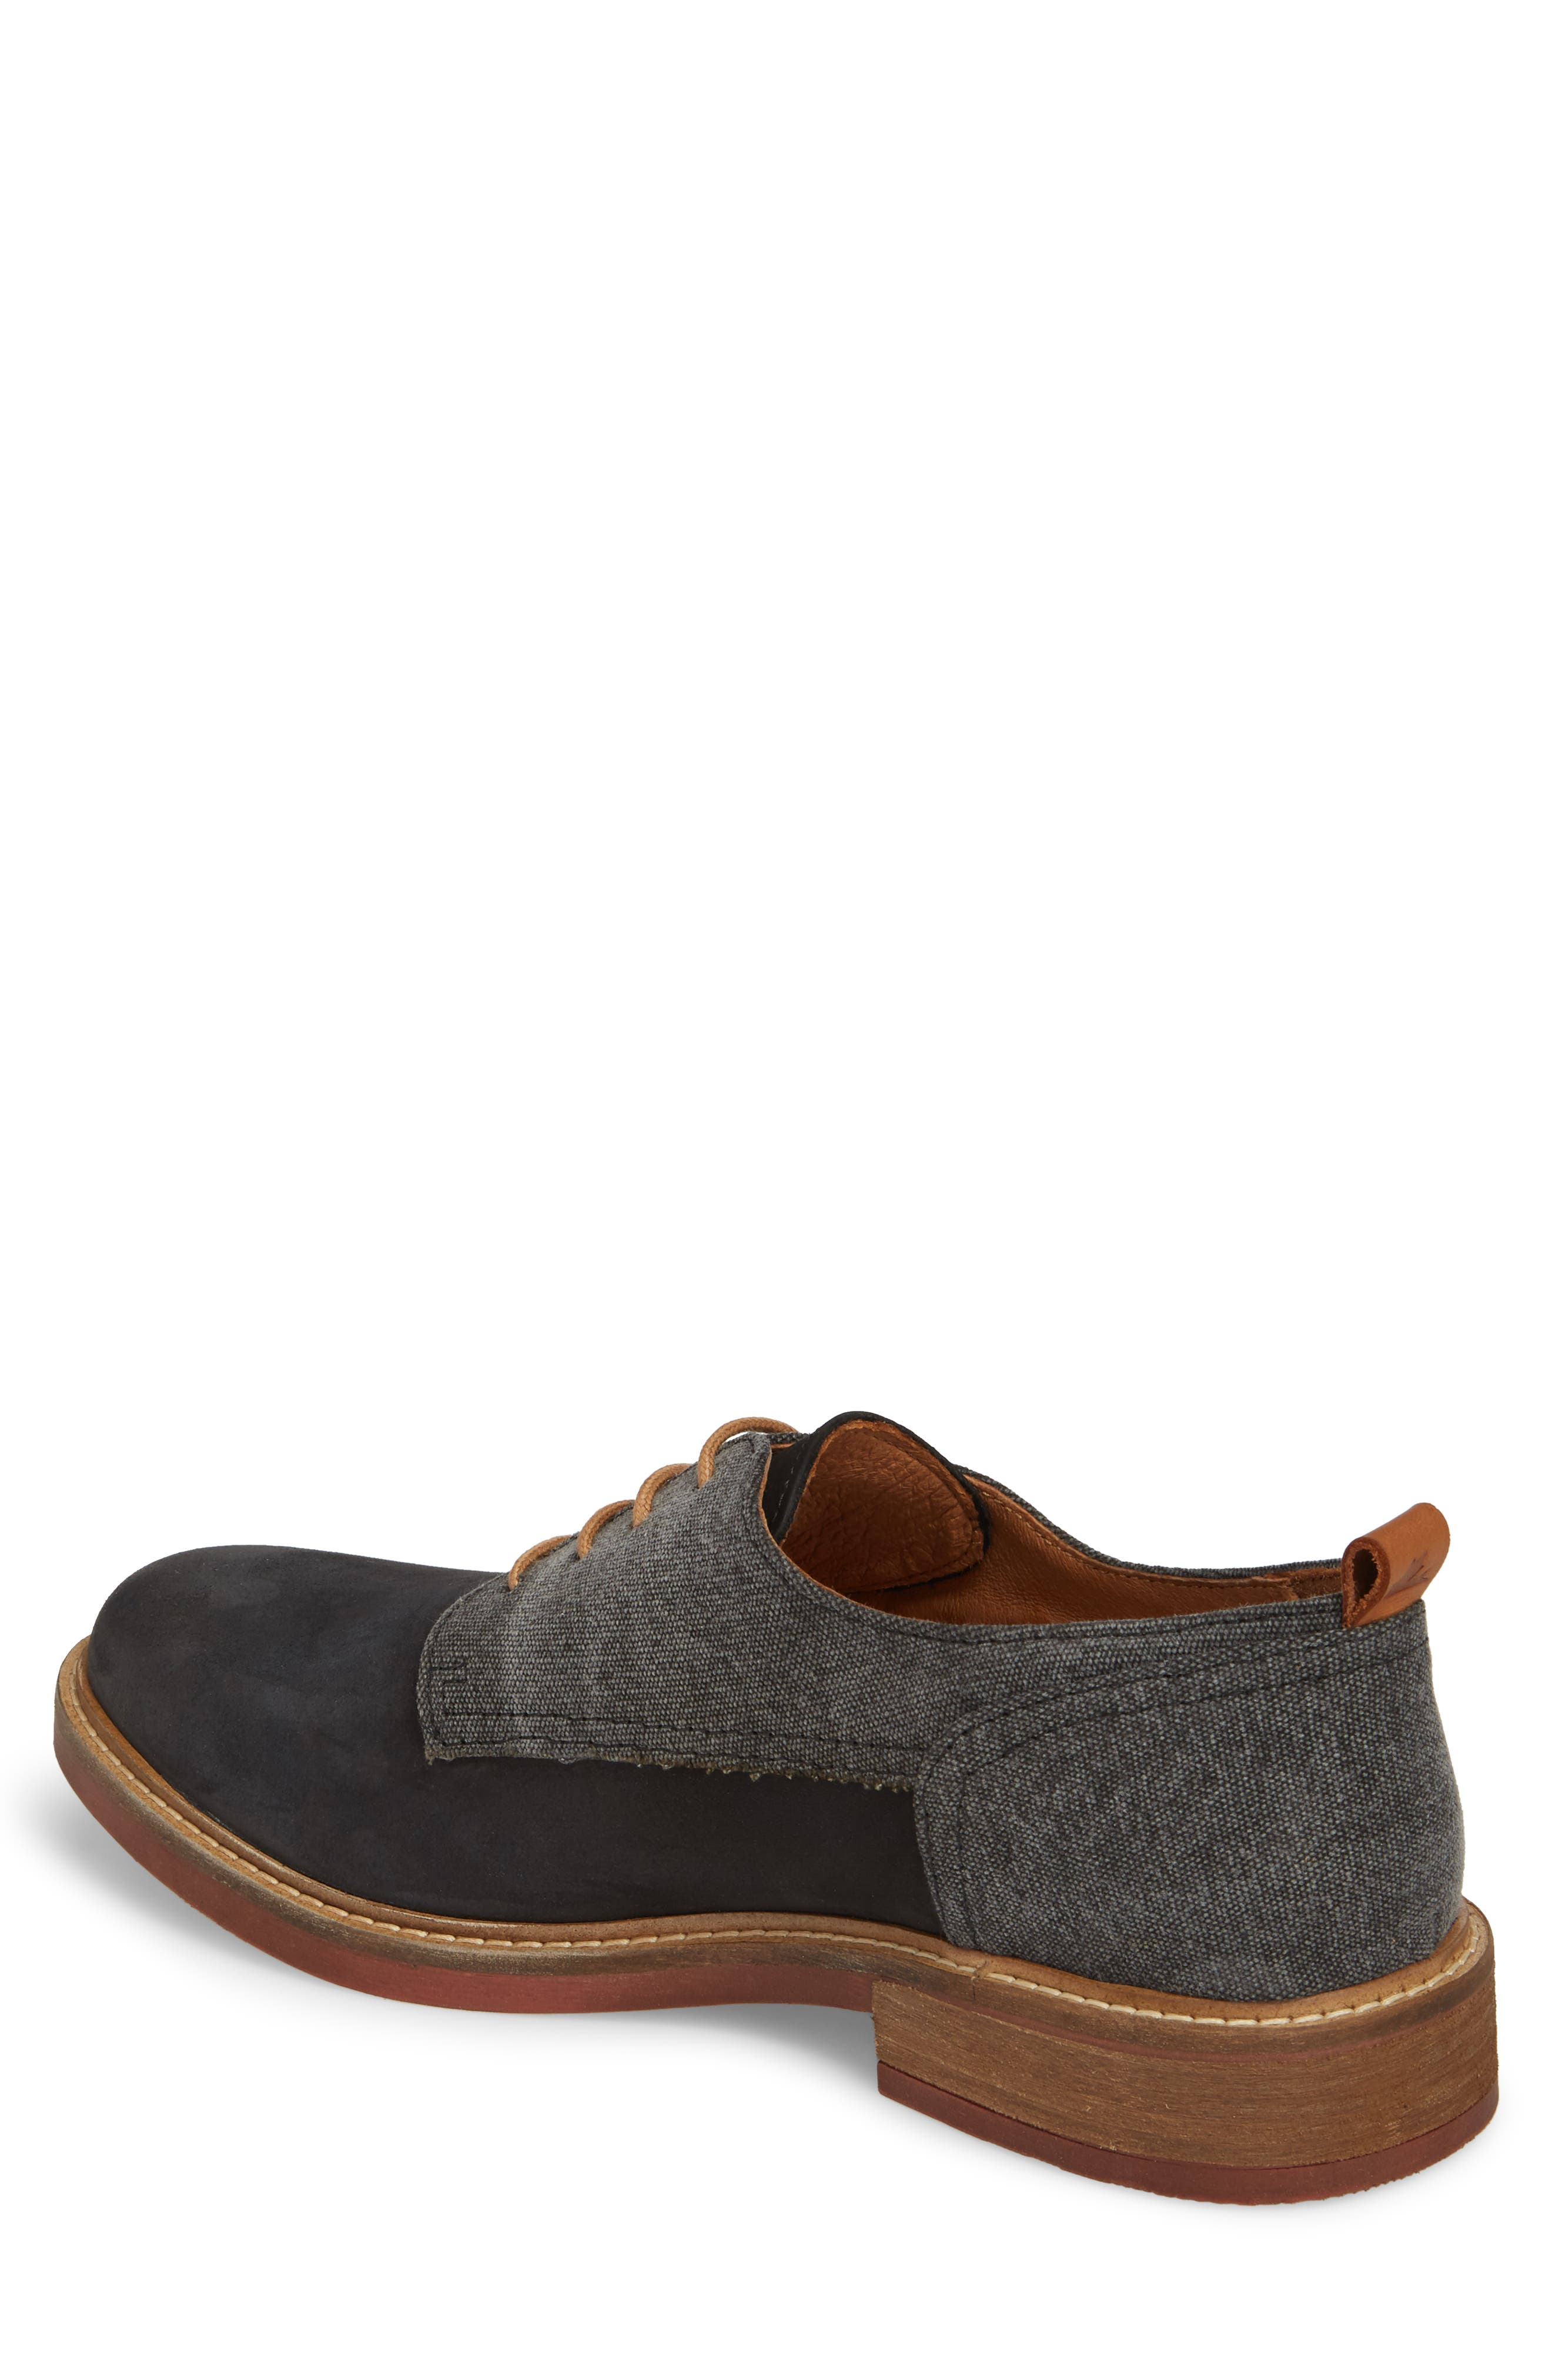 River Water Resistant Derby,                             Alternate thumbnail 2, color,                             Nero